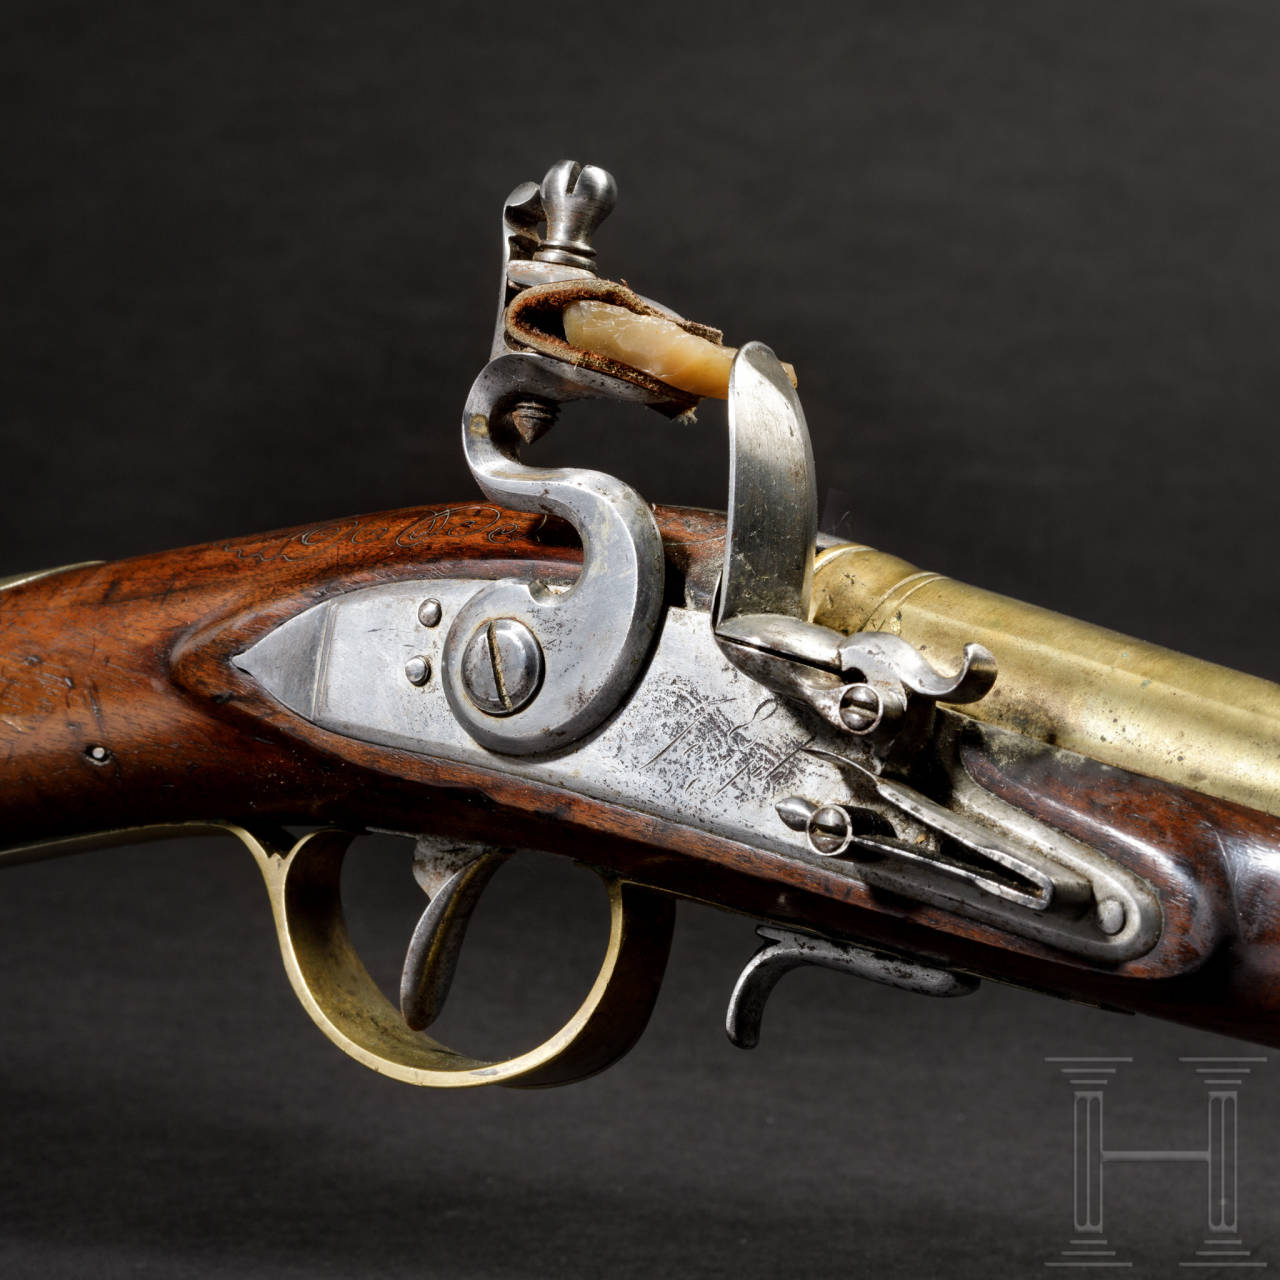 A blunderbuss with spring loaded bayonet, end of 18th century